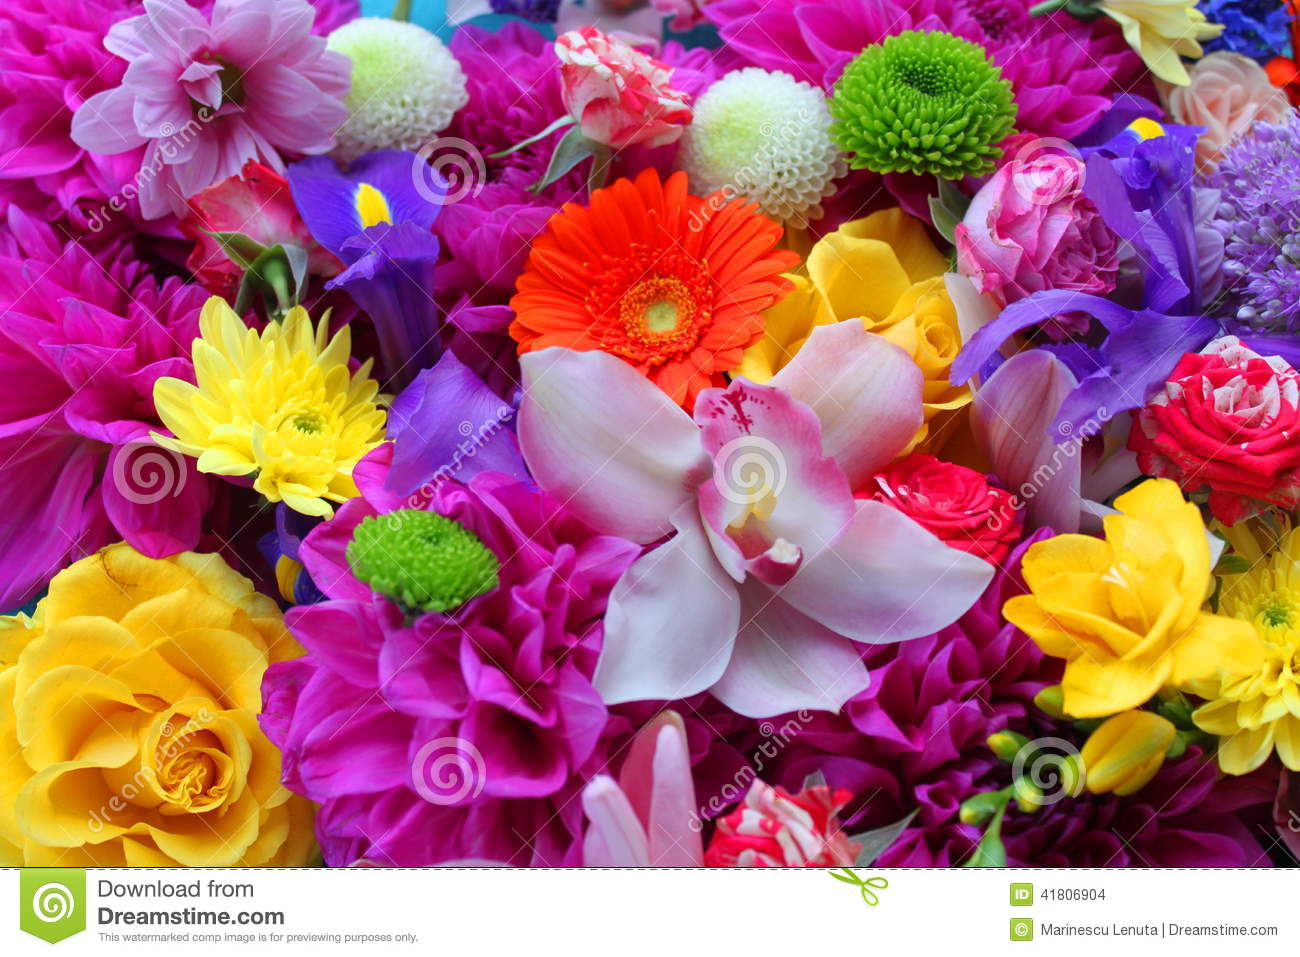 colorful flowers background stock photo - image of flowering, bloom